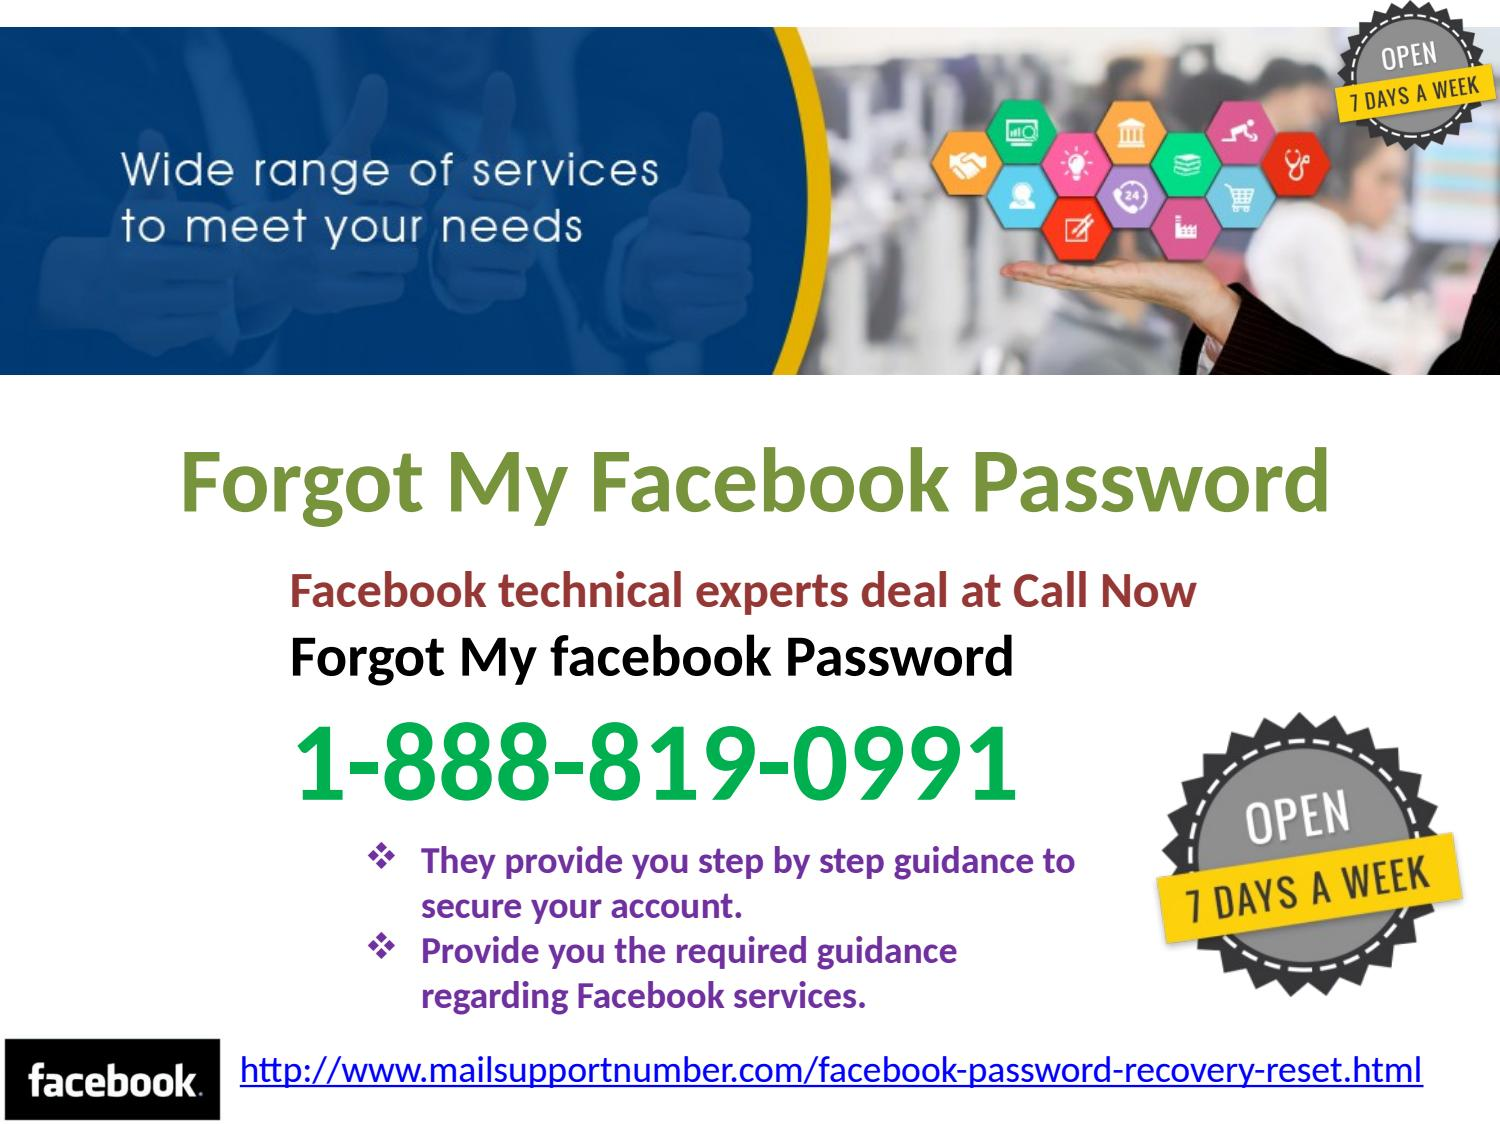 Forgot my Facebook Password 1-888-819-0991 Is Your Best